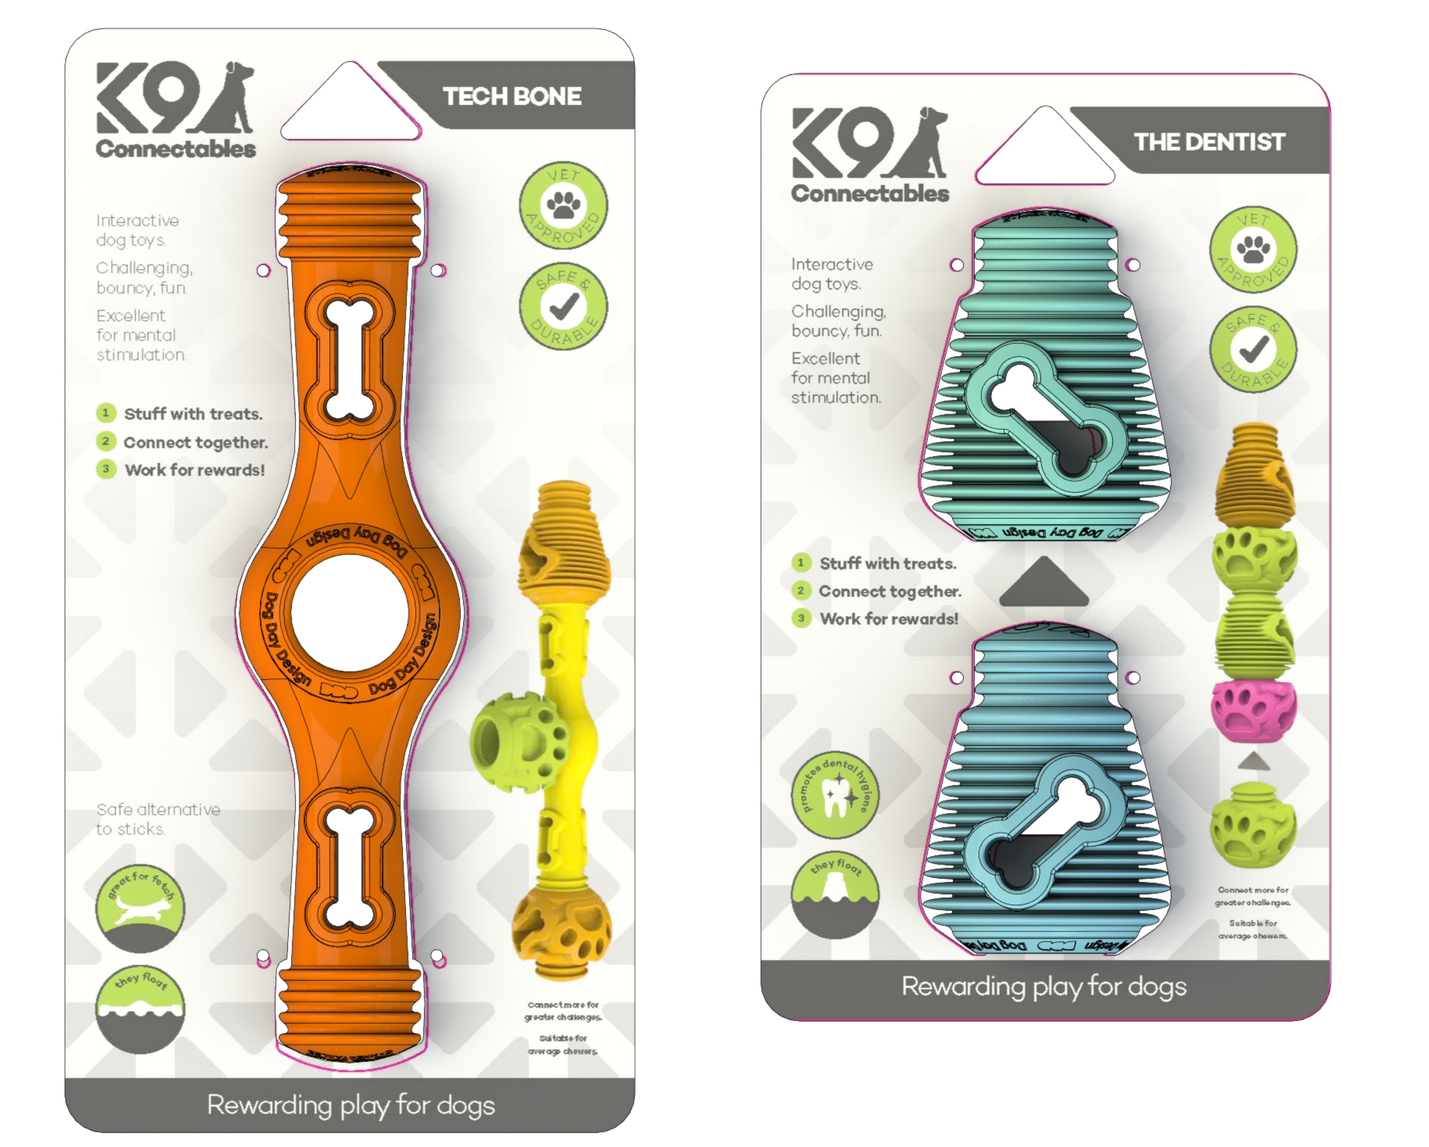 K9CONNECTABLES   An exciting new range of interconnectable dog toys that can be stuffed with your dogs favourite treats encouraging them to work for their rewards and resulting in longer play times.